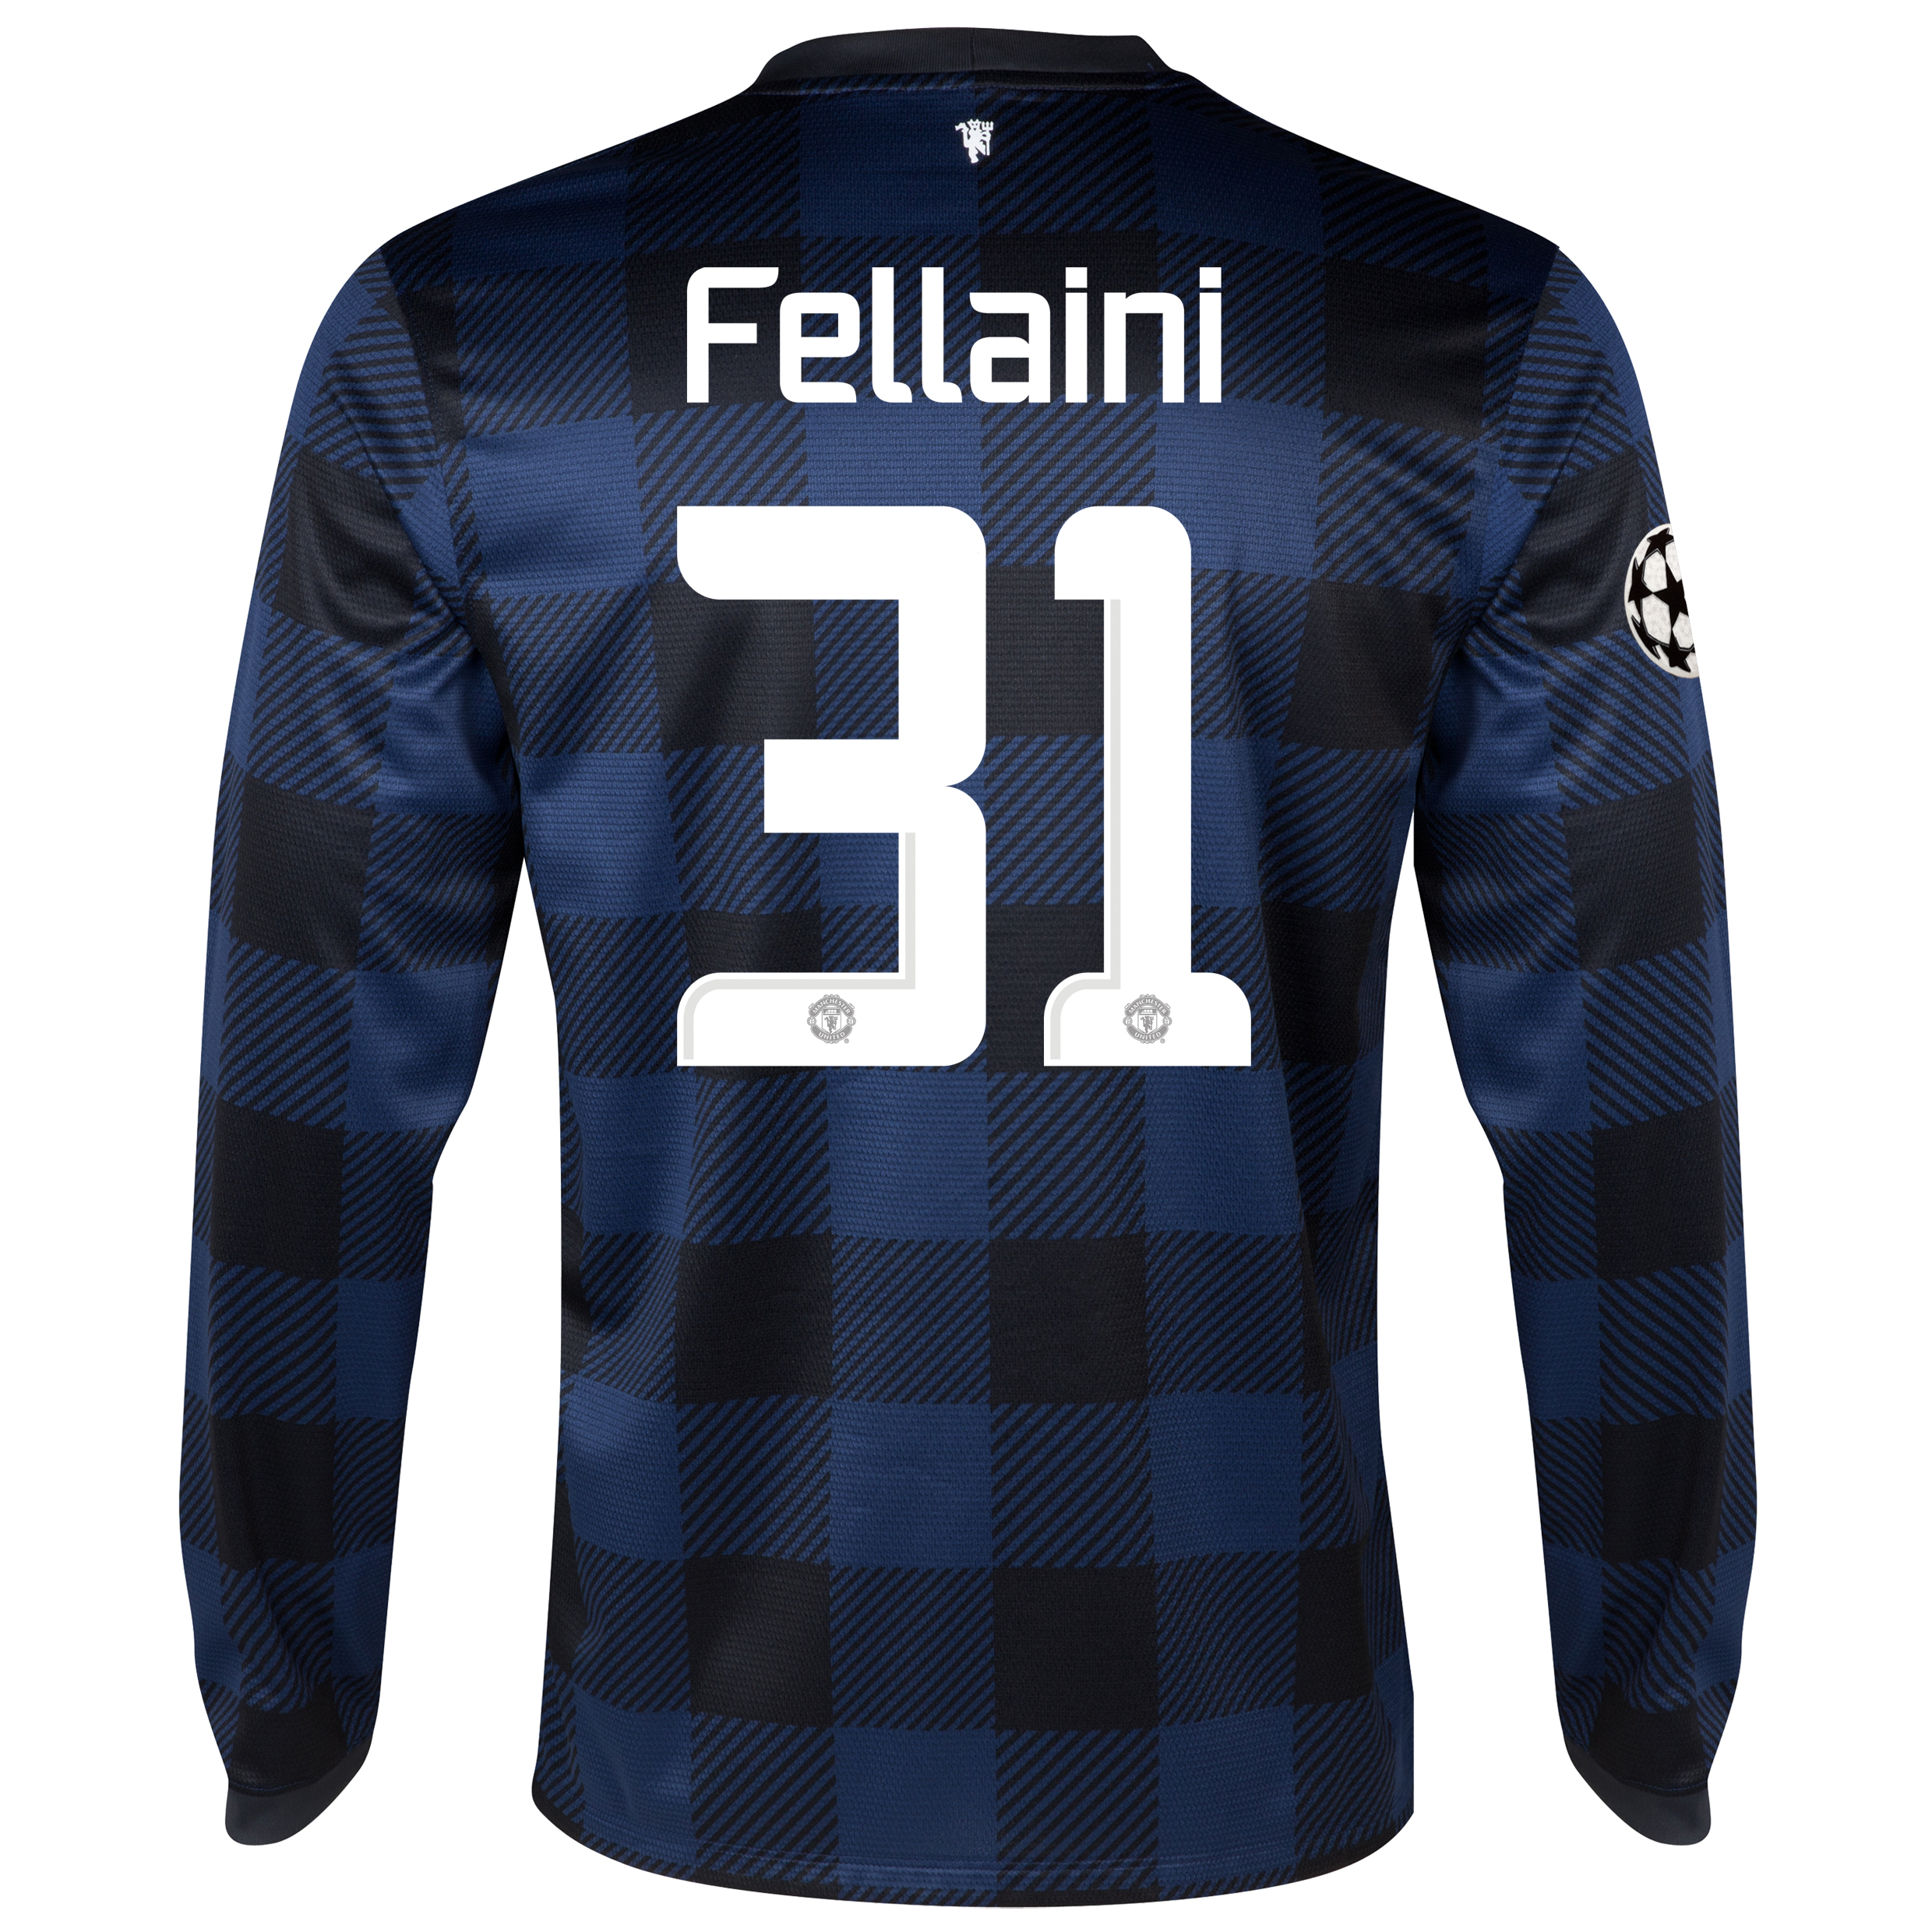 Manchester United UEFA Champions League Away Shirt 2013/14 - Long Sleeved - Kids with Fellaini 31 printing